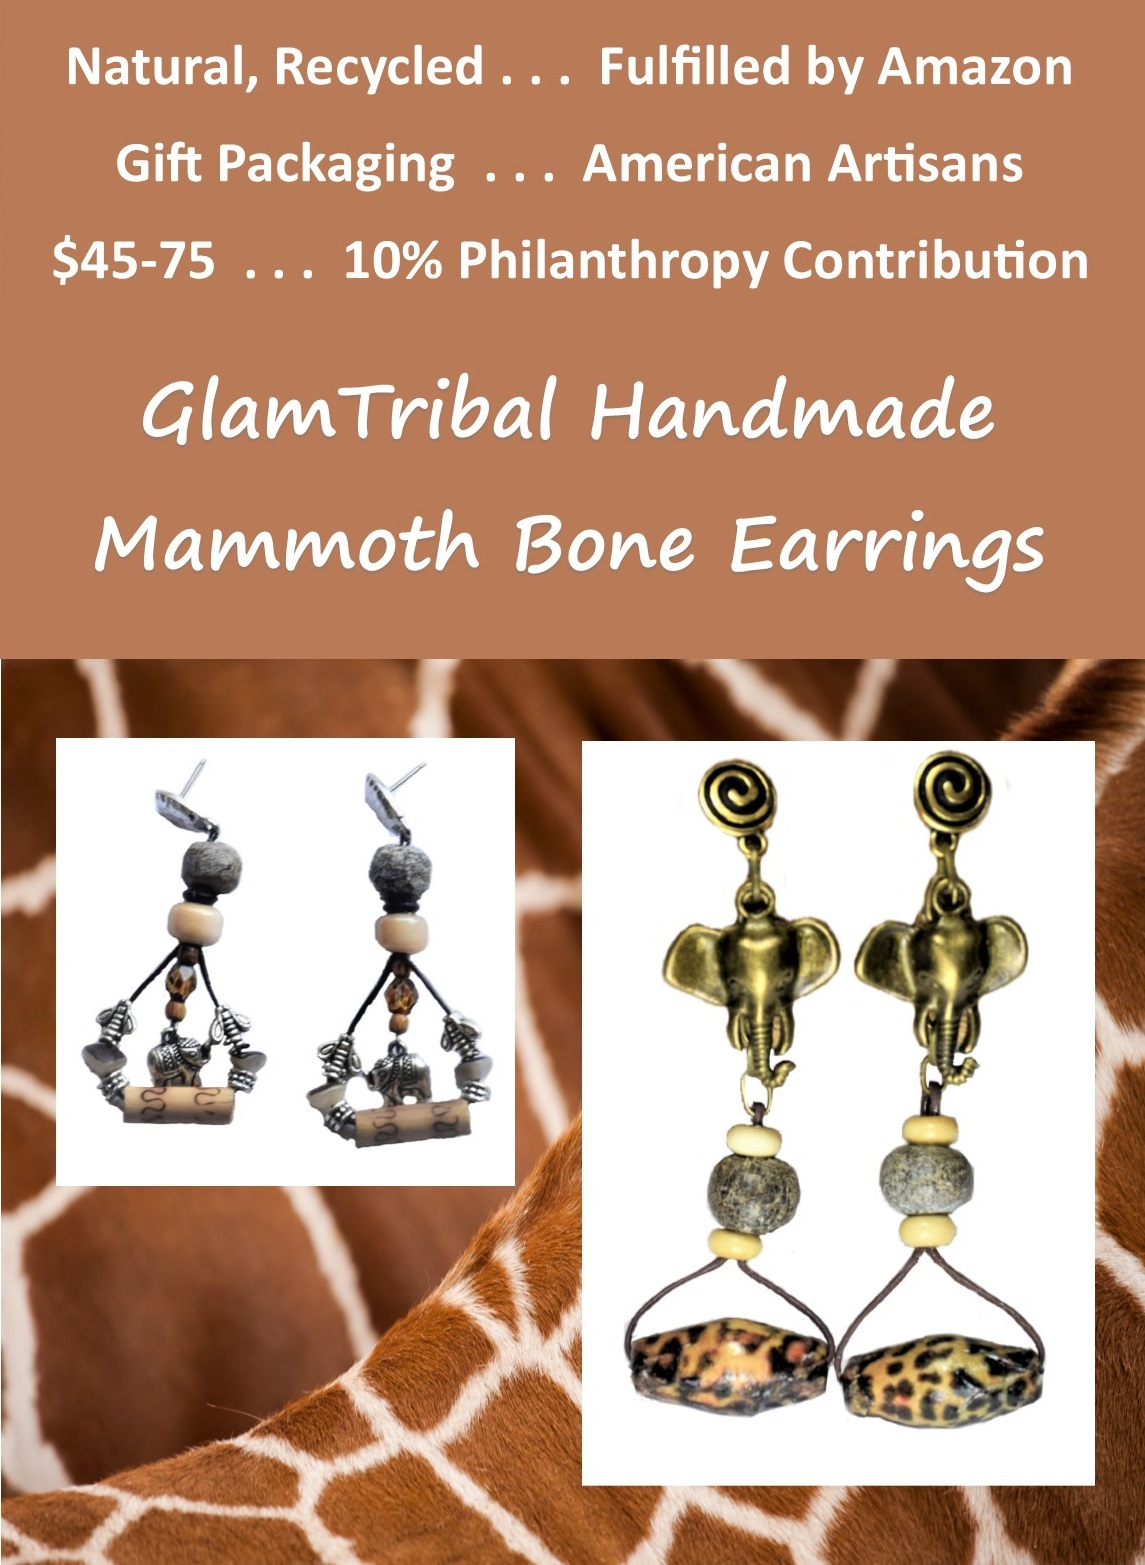 GlamTribal at Amazon Woolly Mammoth Earring Collage 91319.jpg